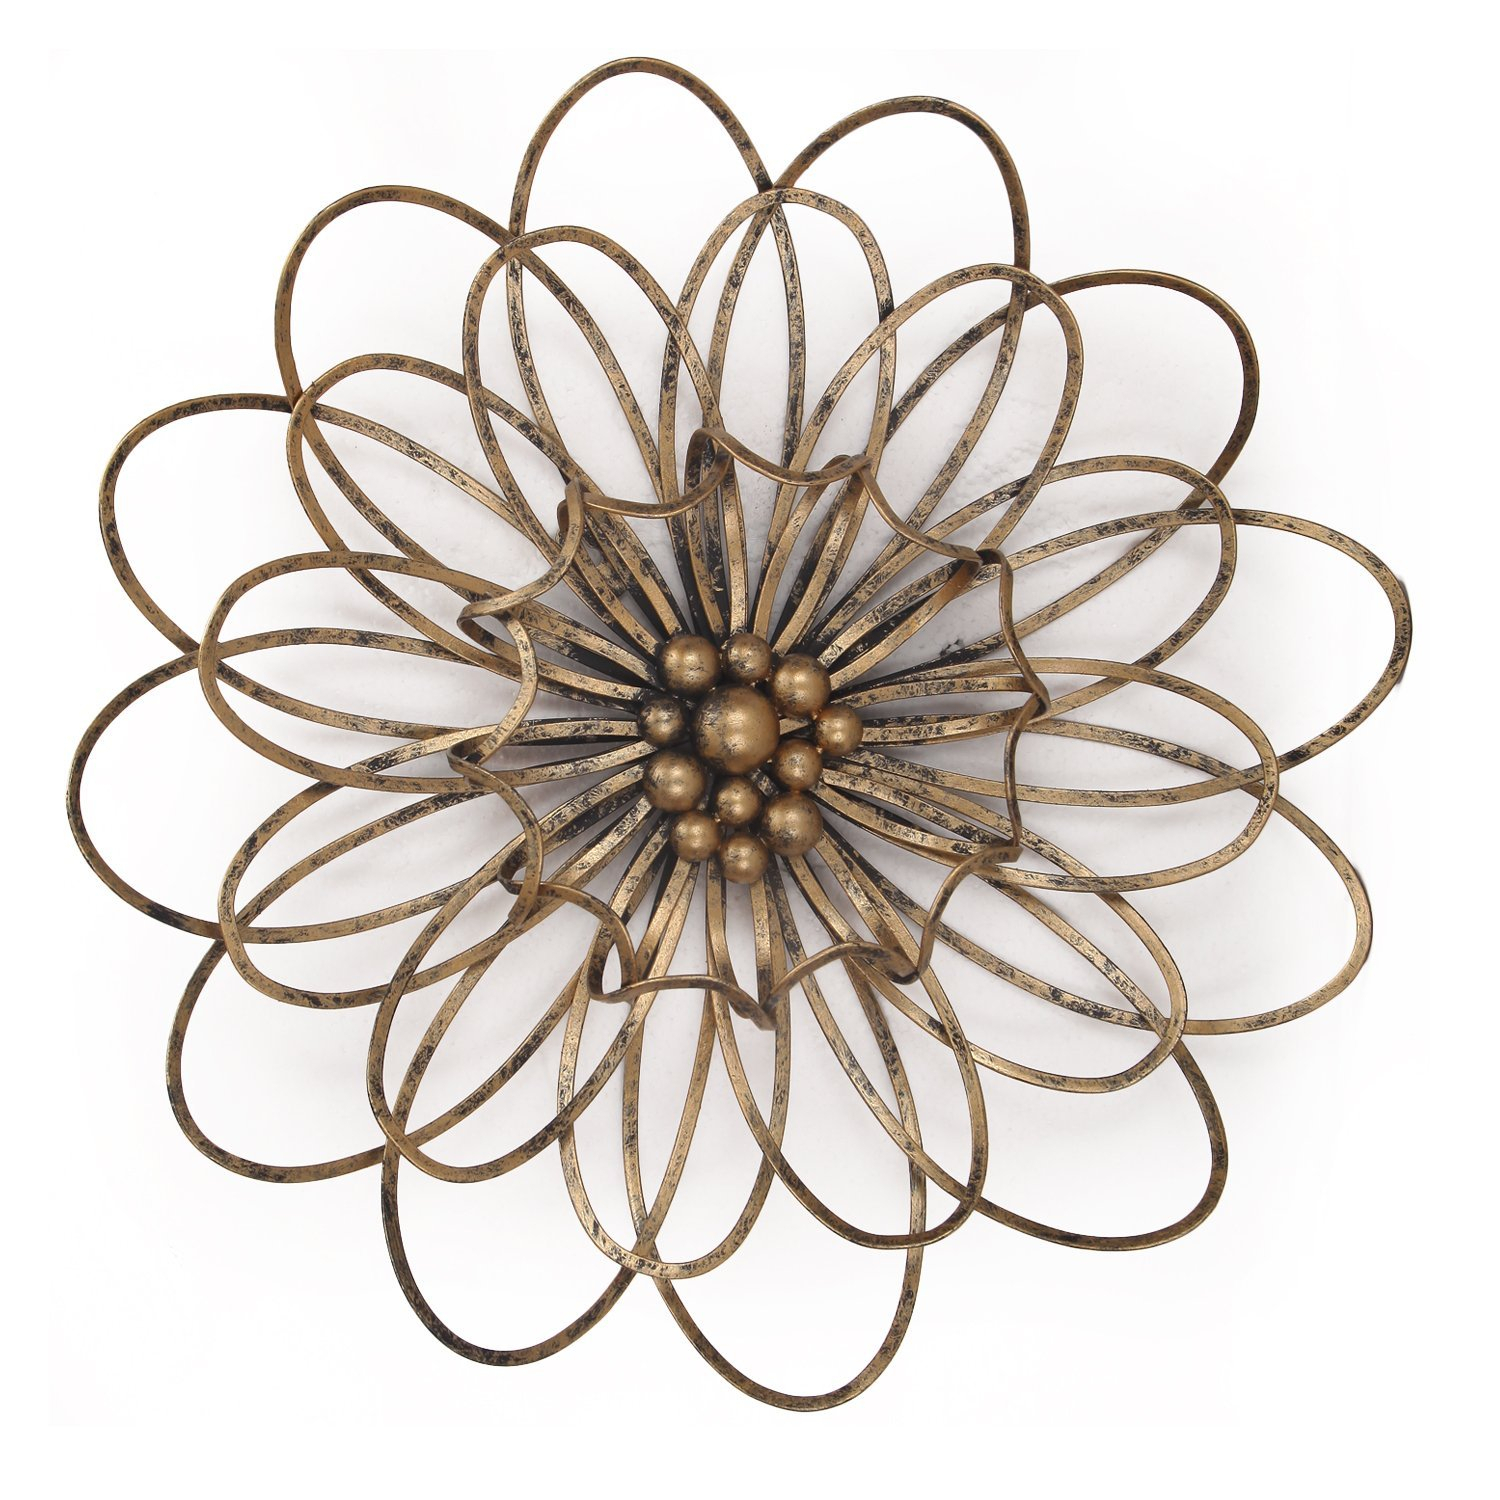 Deco De Ville Wall Metal Decoration Flower Urban Design Metal Wall Decor  For Nature Home Art Decoration & Kitchen Gifts(Dnd0018) intended for Flower Urban Design Metal Wall Decor (Image 10 of 30)